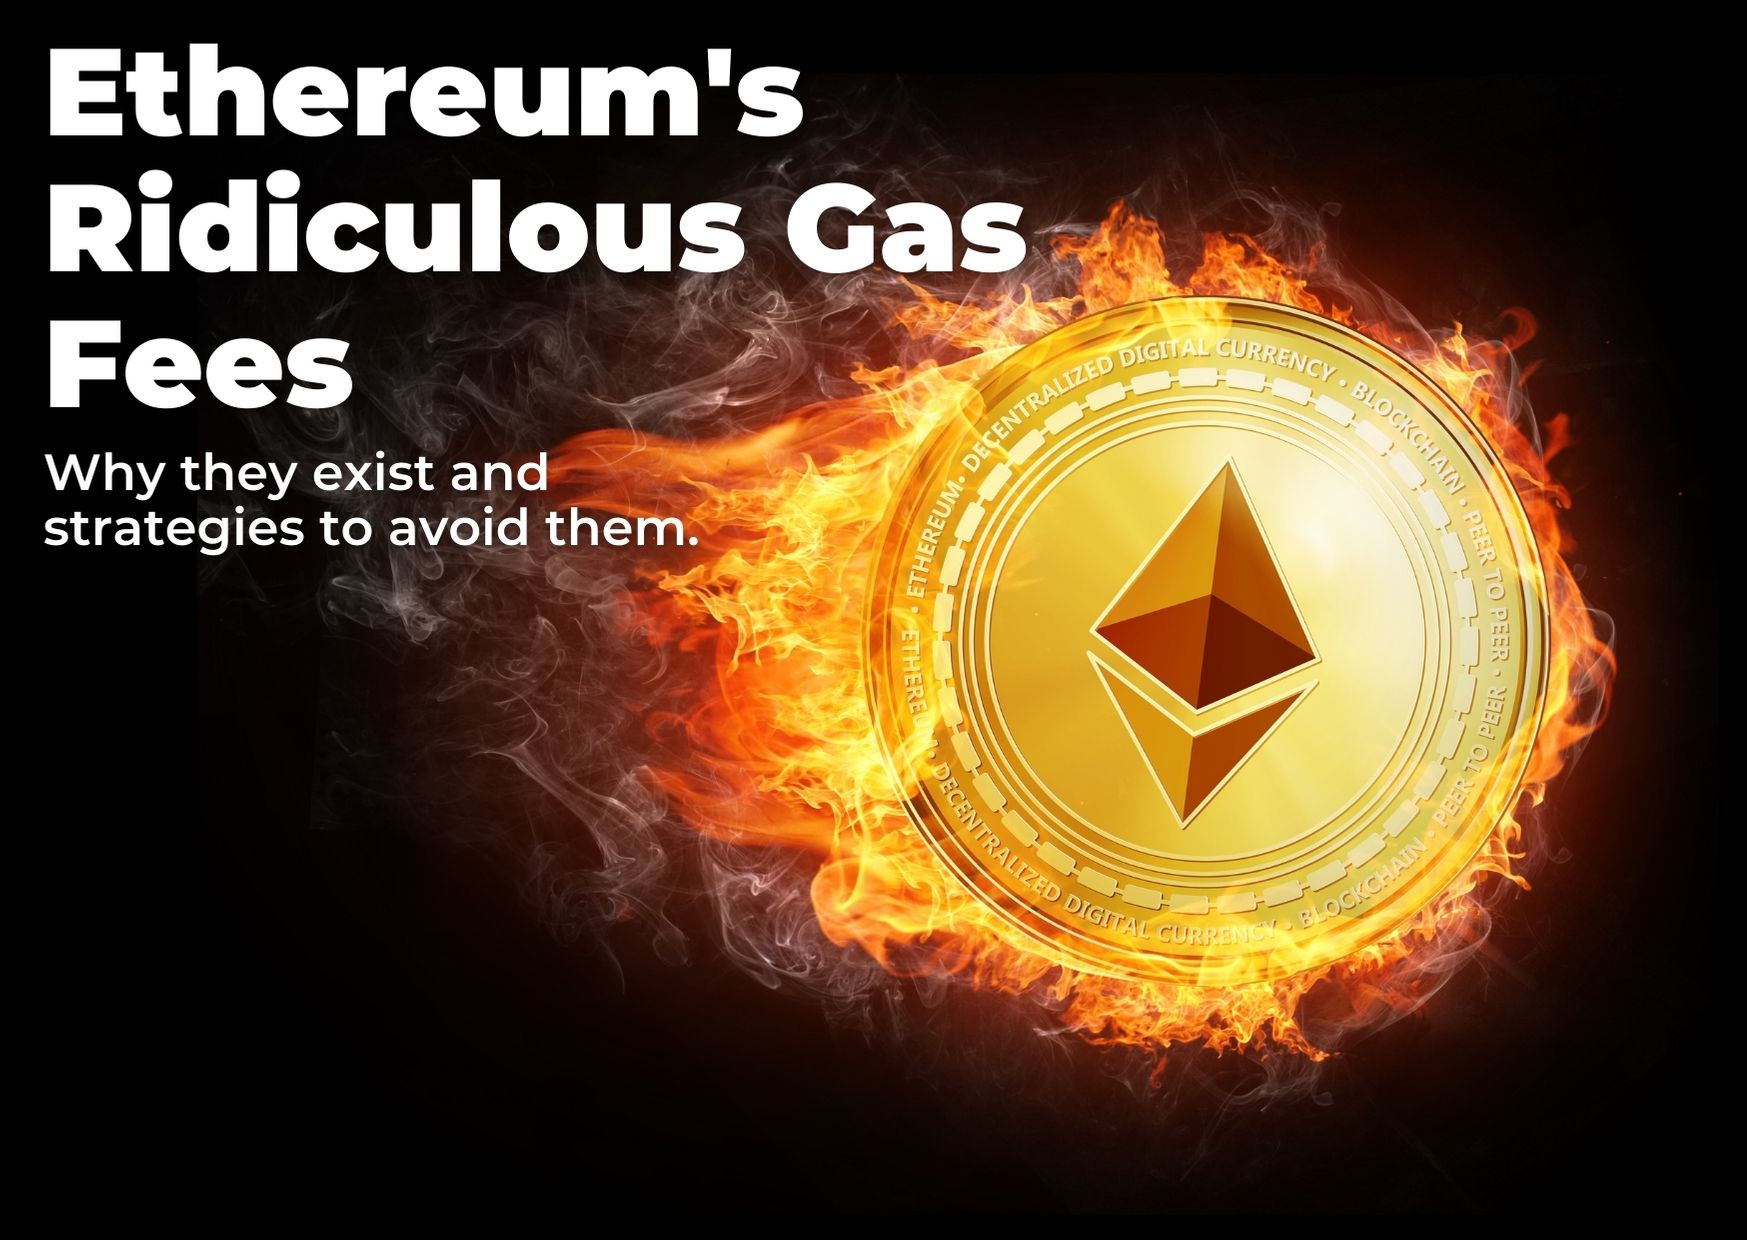 Ethereum's Ridiculously High Gas Fees